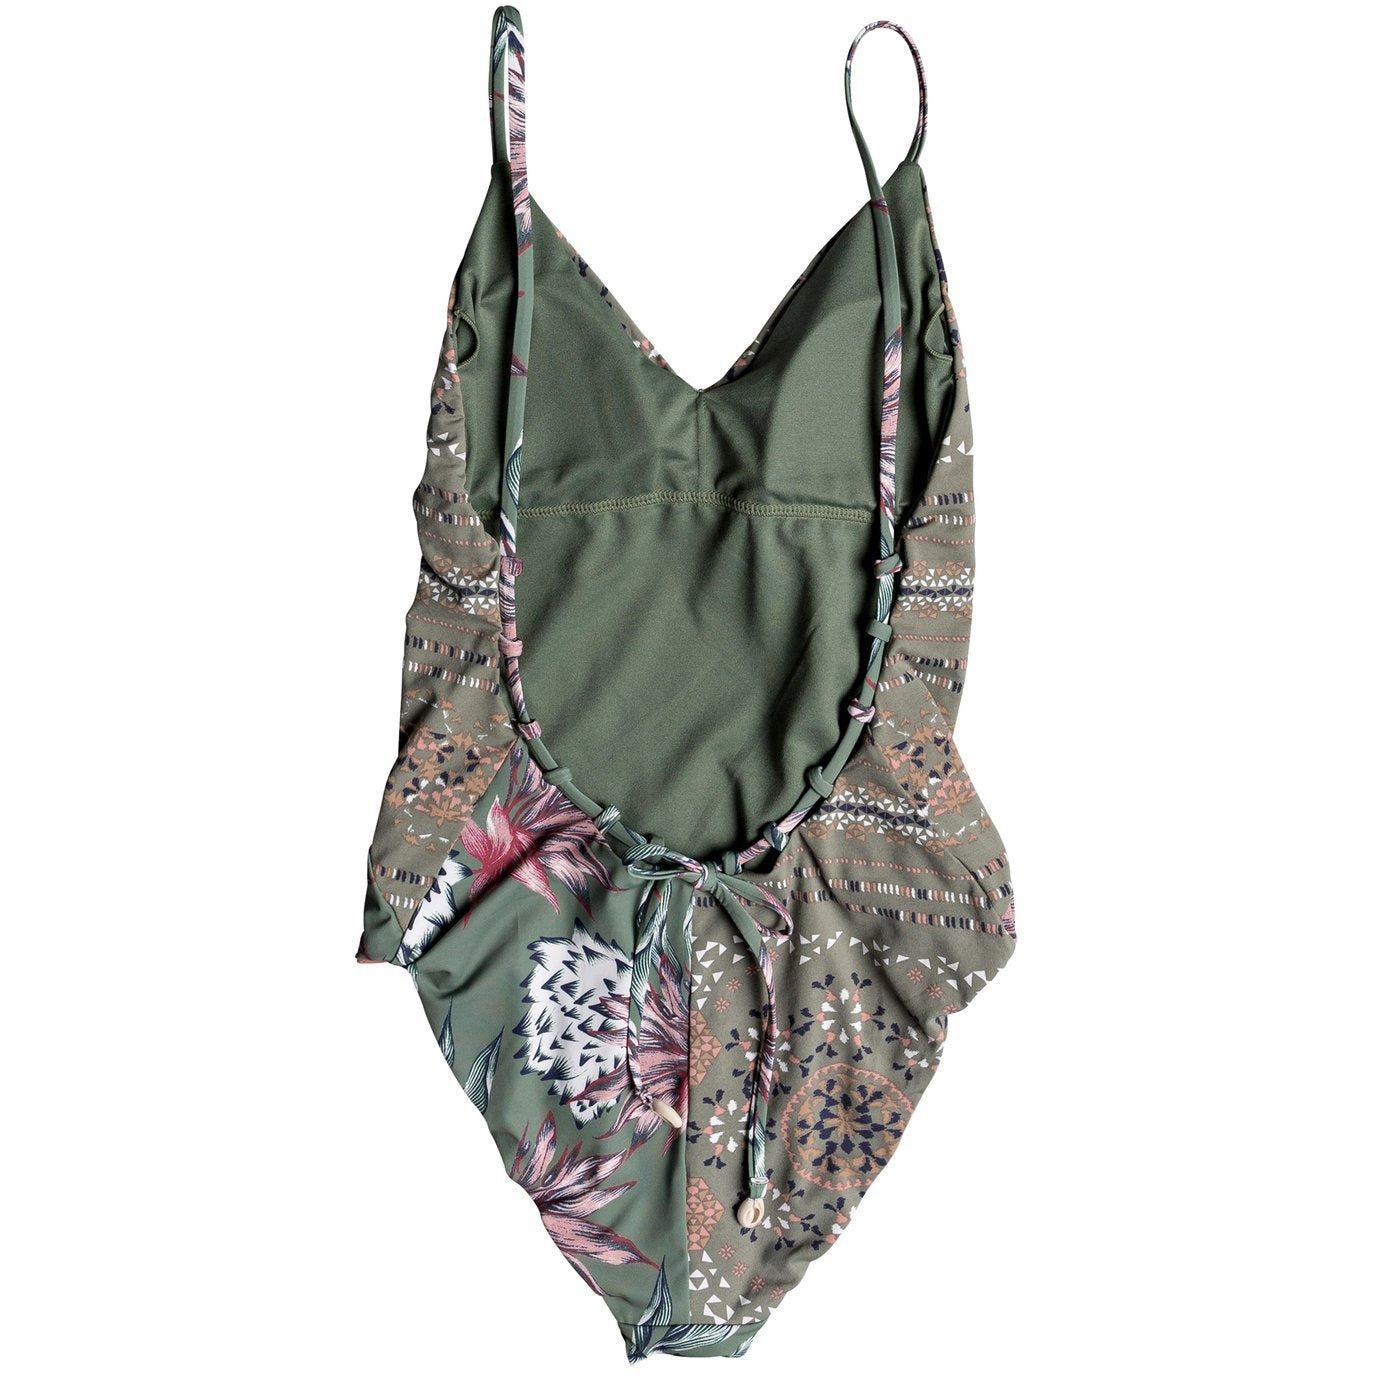 Roxy Little Bandits One Piece Swimsuit - 88 Gear